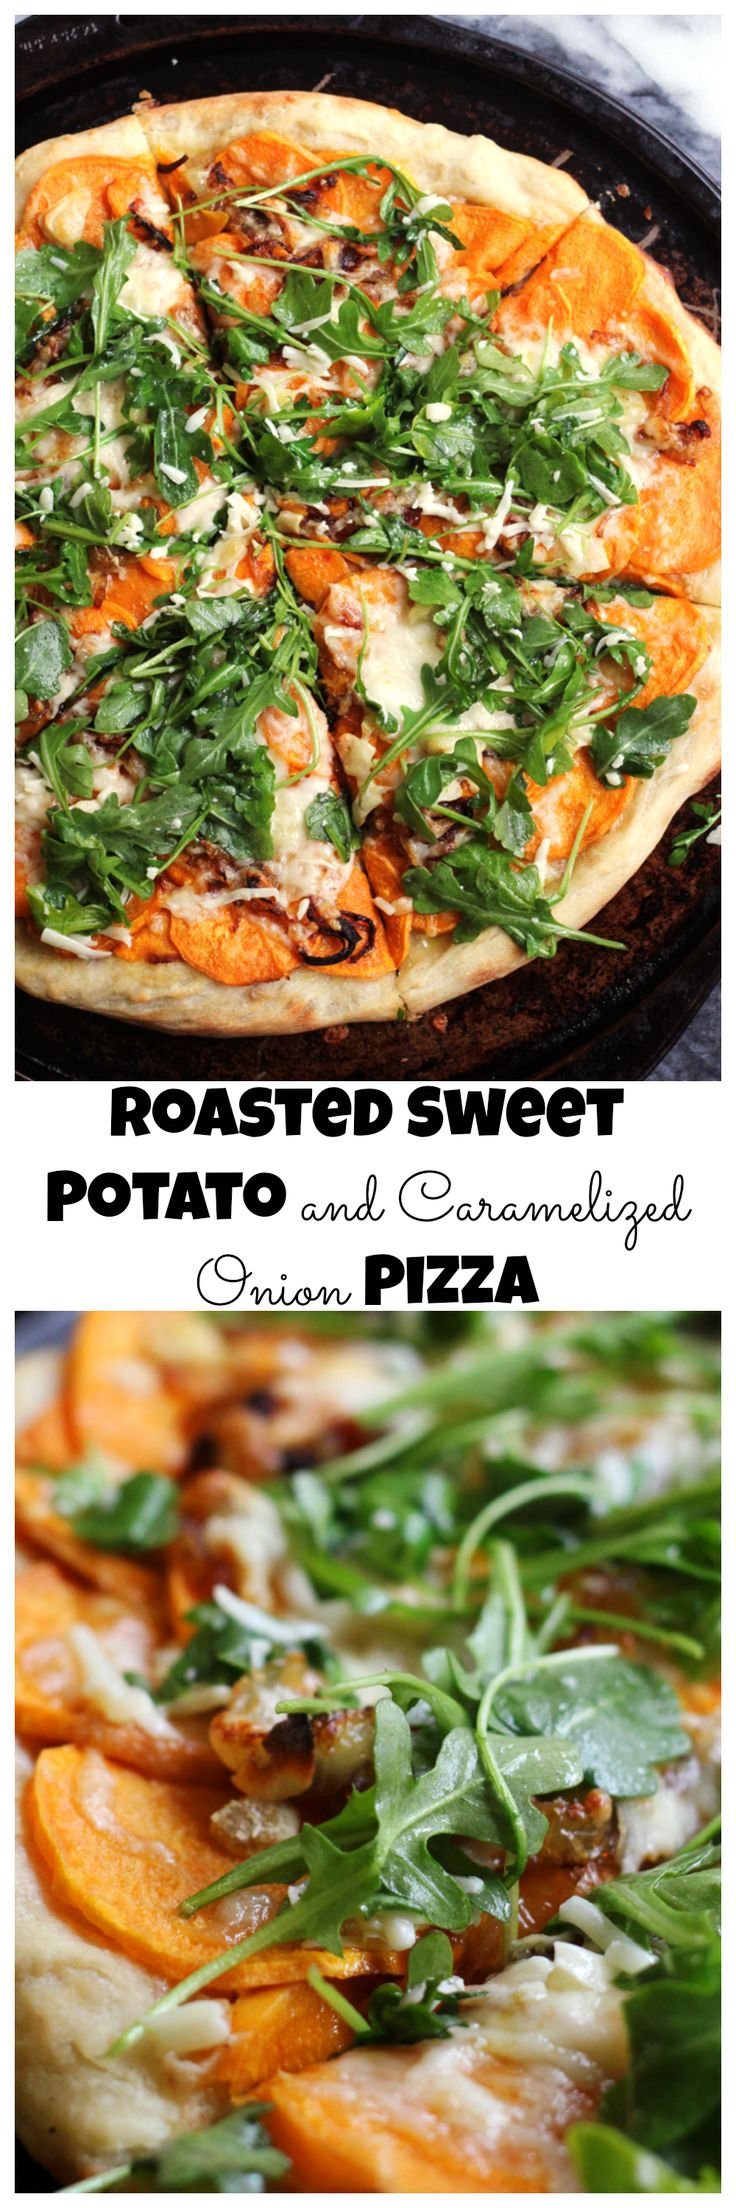 Sweet potatoes and caramelized onions top this one of a kind pizza that gets a dose of fresh flavor from a lemony arugula salad.